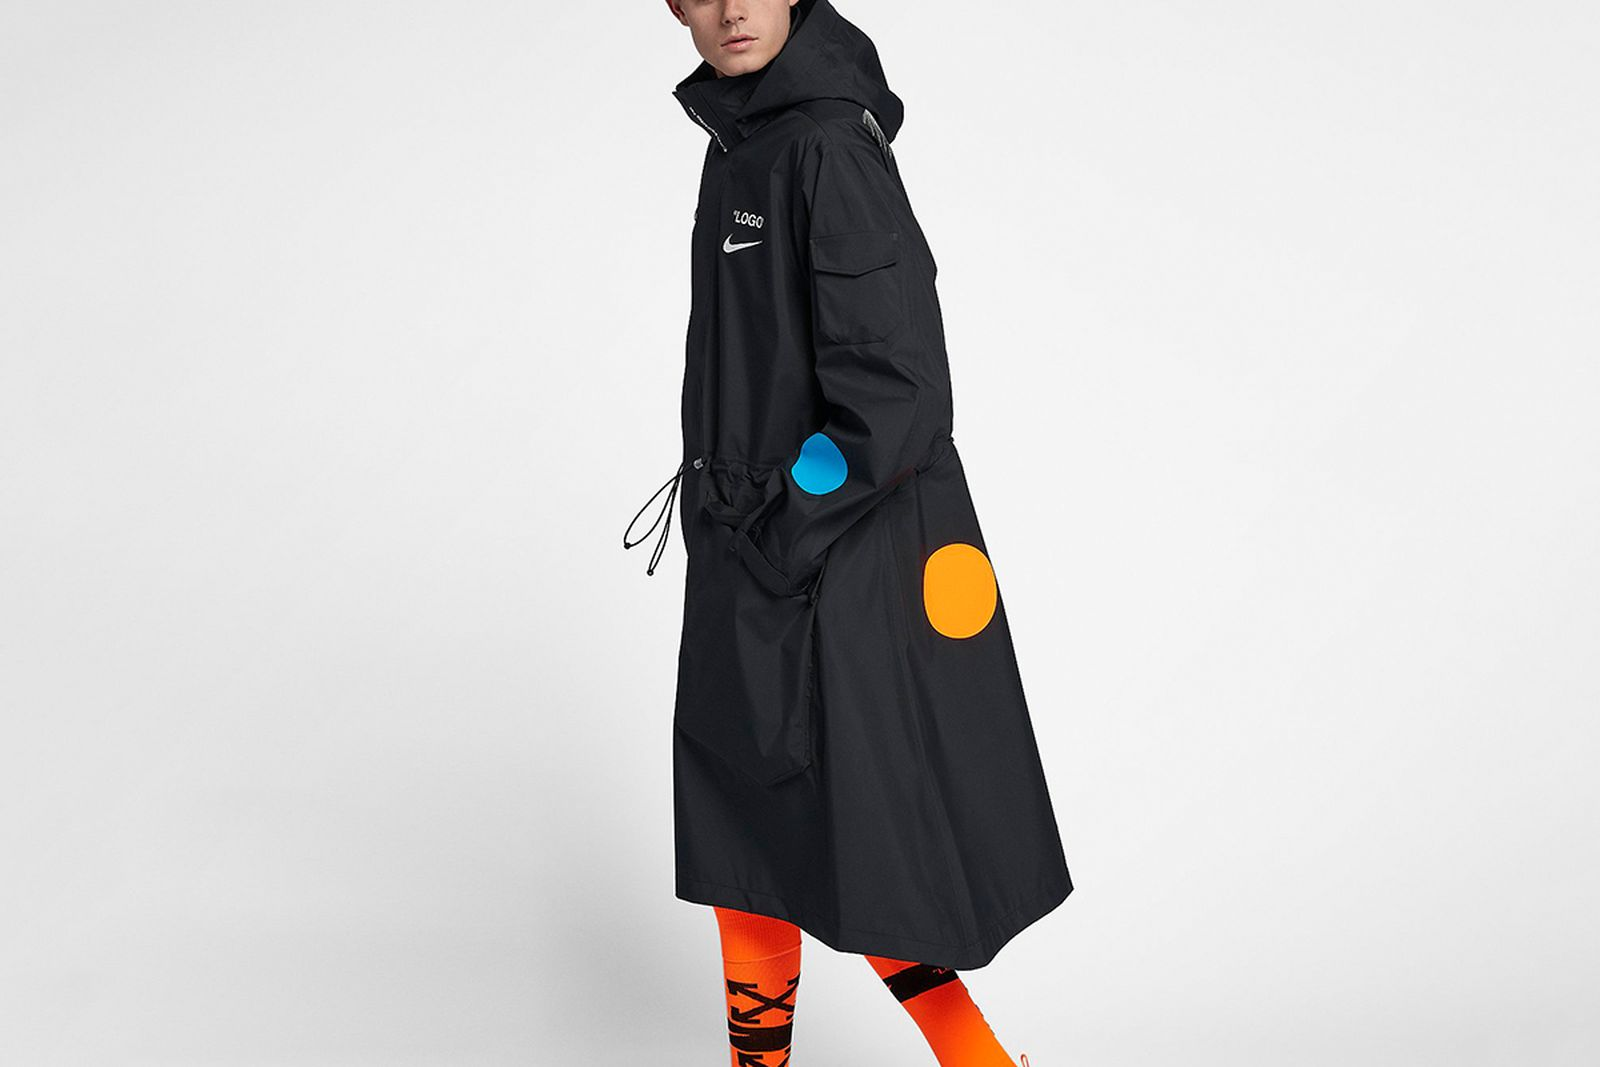 jacket2 2018 FIFA World Cup Nike OFF-WHITE c/o Virgil Abloh